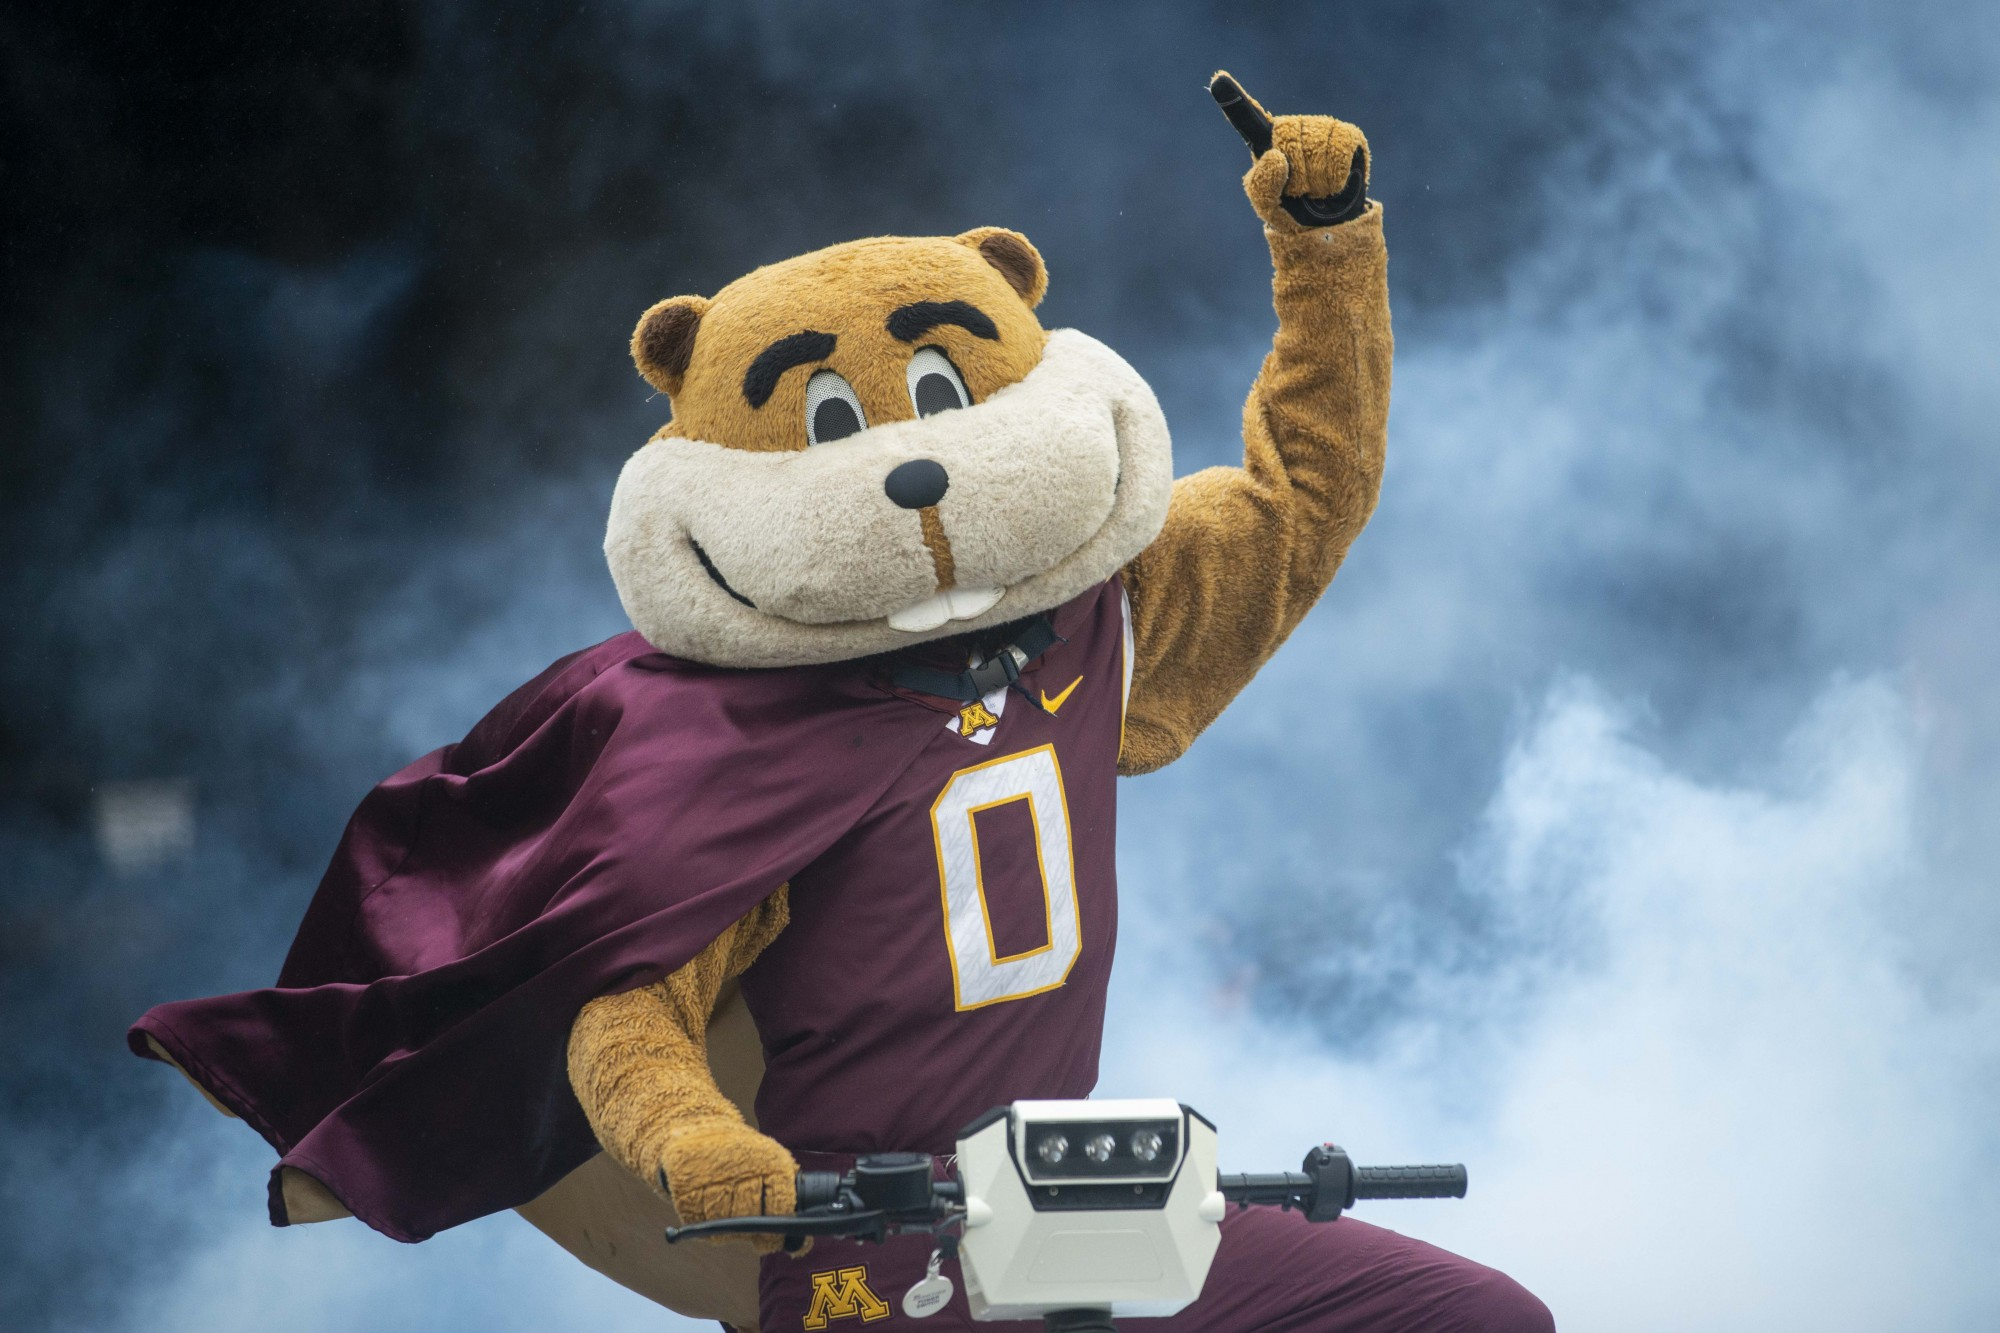 Goldy makes his field entrance during the Gopher game against the Badgers at TCF Bank Stadium on Saturday, Nov. 30.